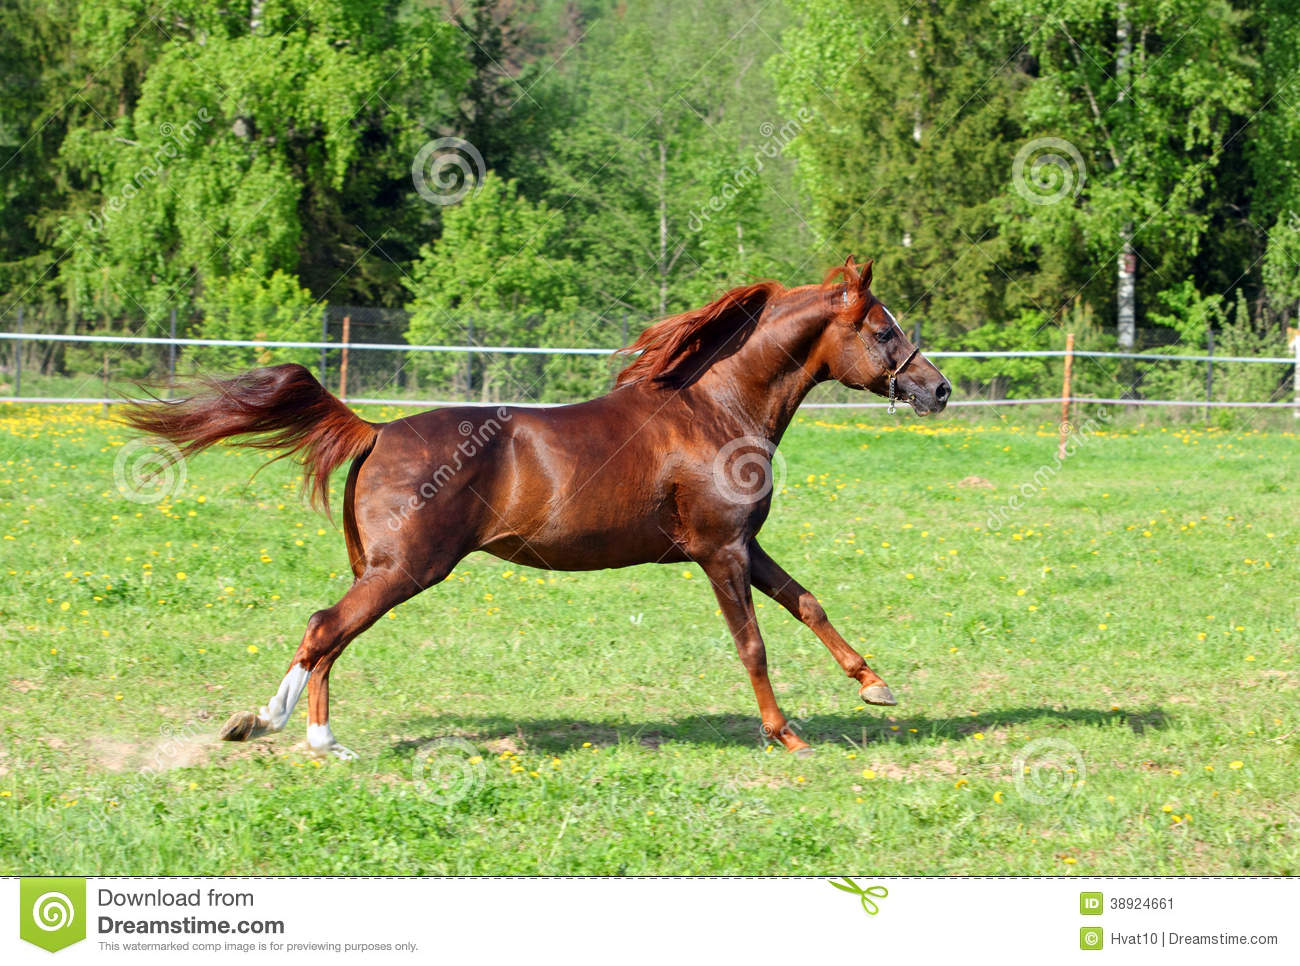 Arabian Horse Galloping In The Field Stock Image Image Of Pets Animal 38924661